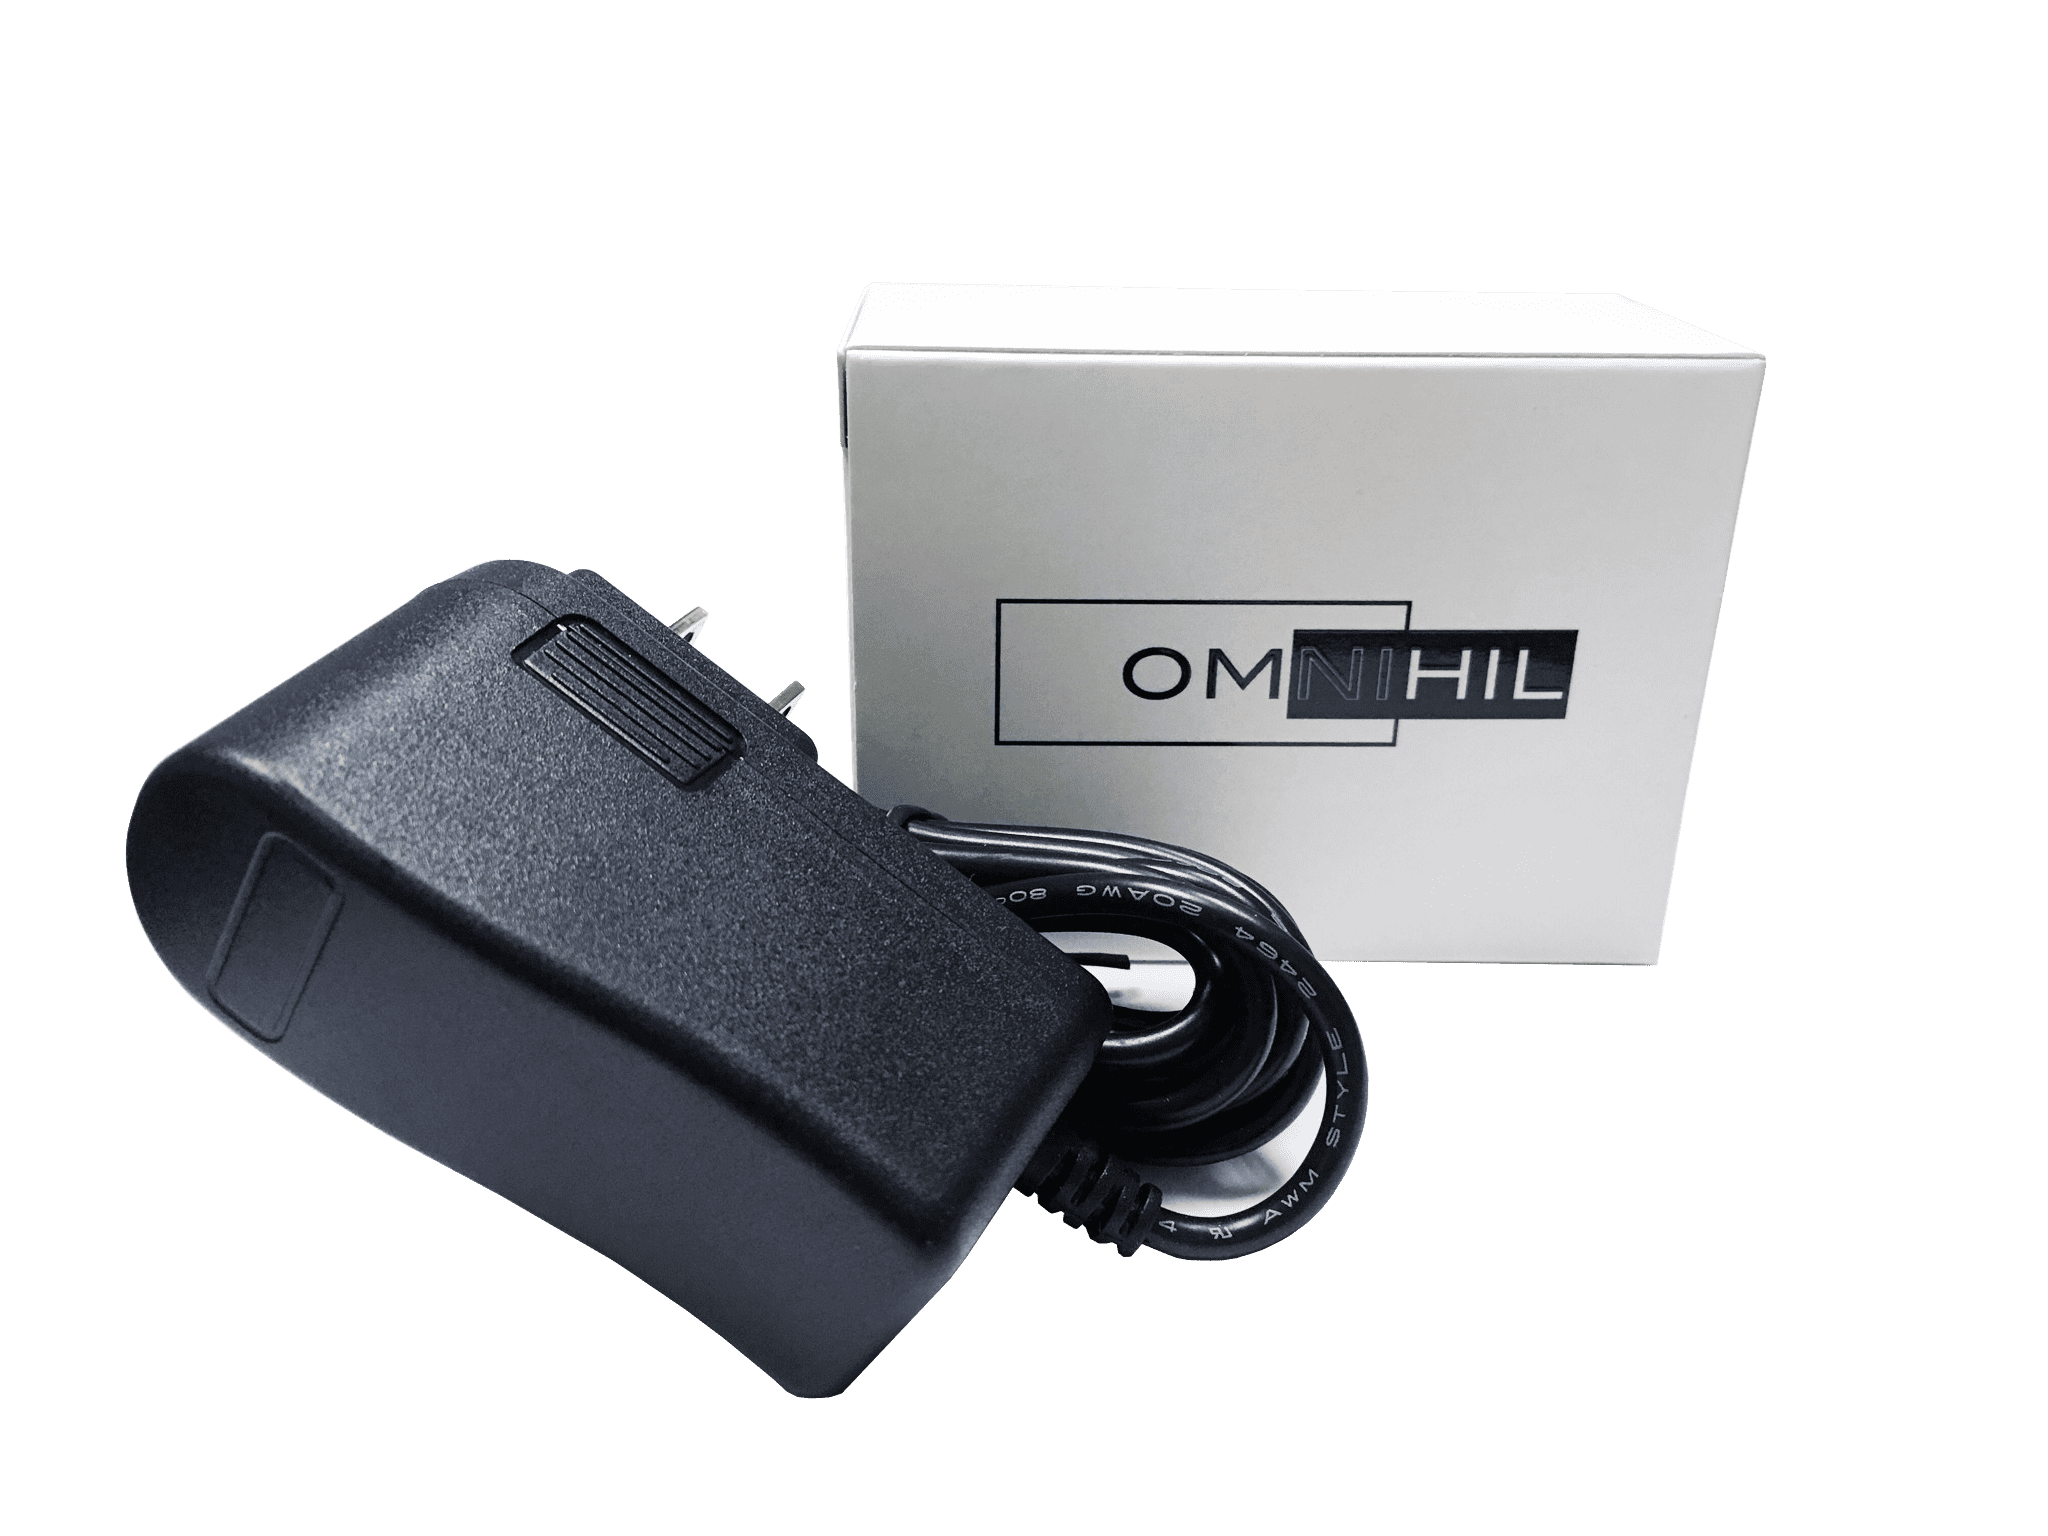 OMNIHIL AC DC Adapter Adaptor for M-Audio Trigger Finger Pro Pad Controller With Step... by OMNIHIL